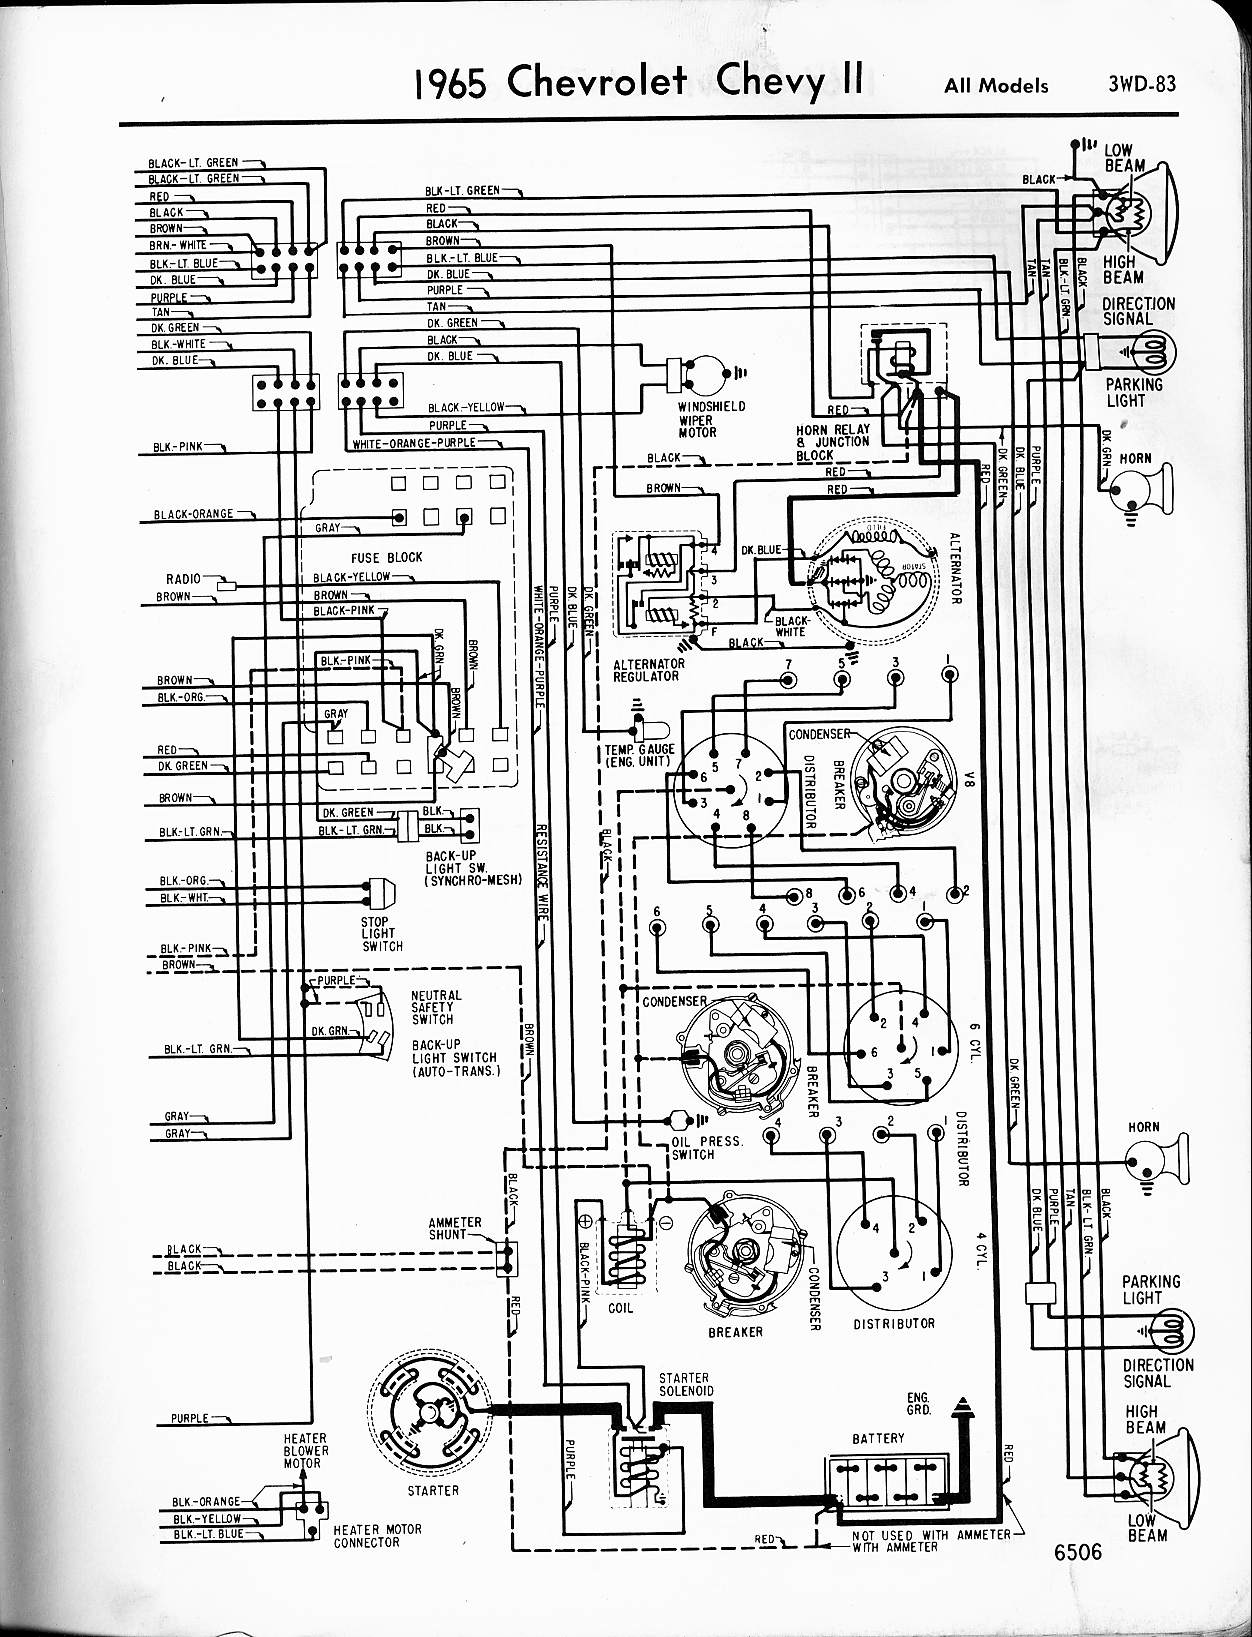 1971 chevy wiring diagrams detailed schematics diagram 1978 firebird wiring diagram chevy diagrams 1967 chevelle fuse box diagram 1971 chevy wiring diagrams